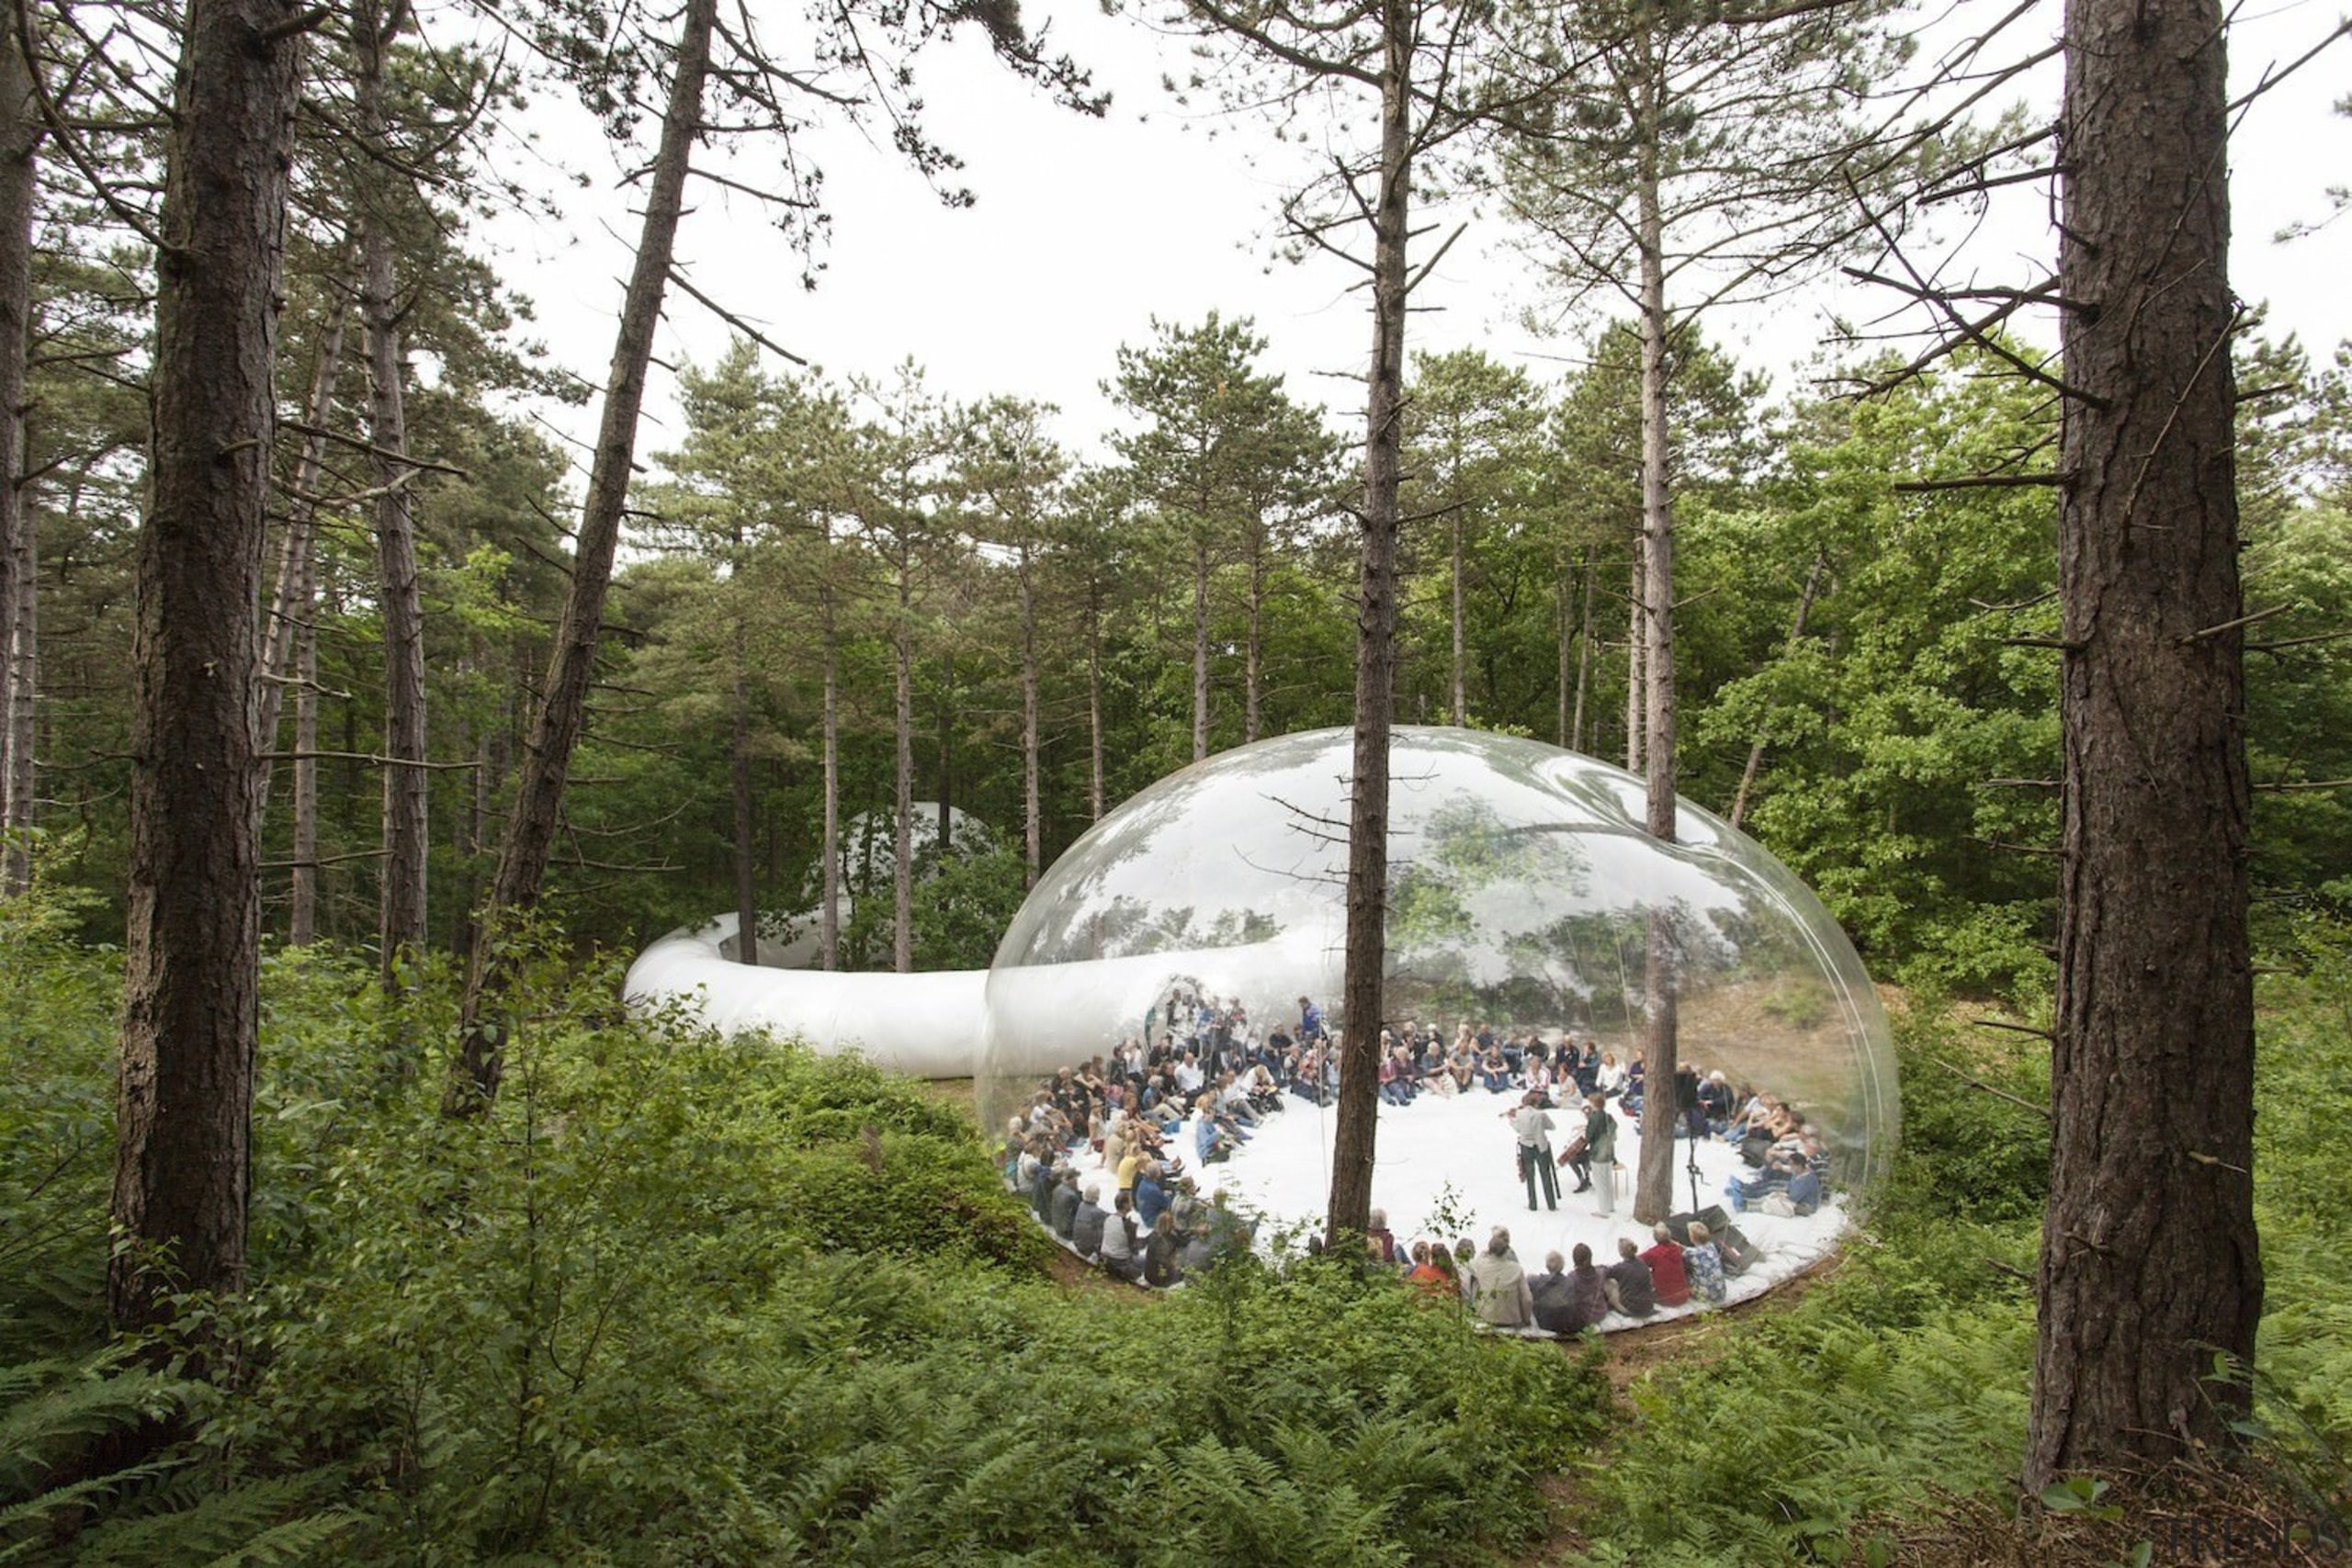 Architect: Plastique FantastiquePhotography by Marco Canevacci, Jelte biome, forest, jungle, nature reserve, tree, brown